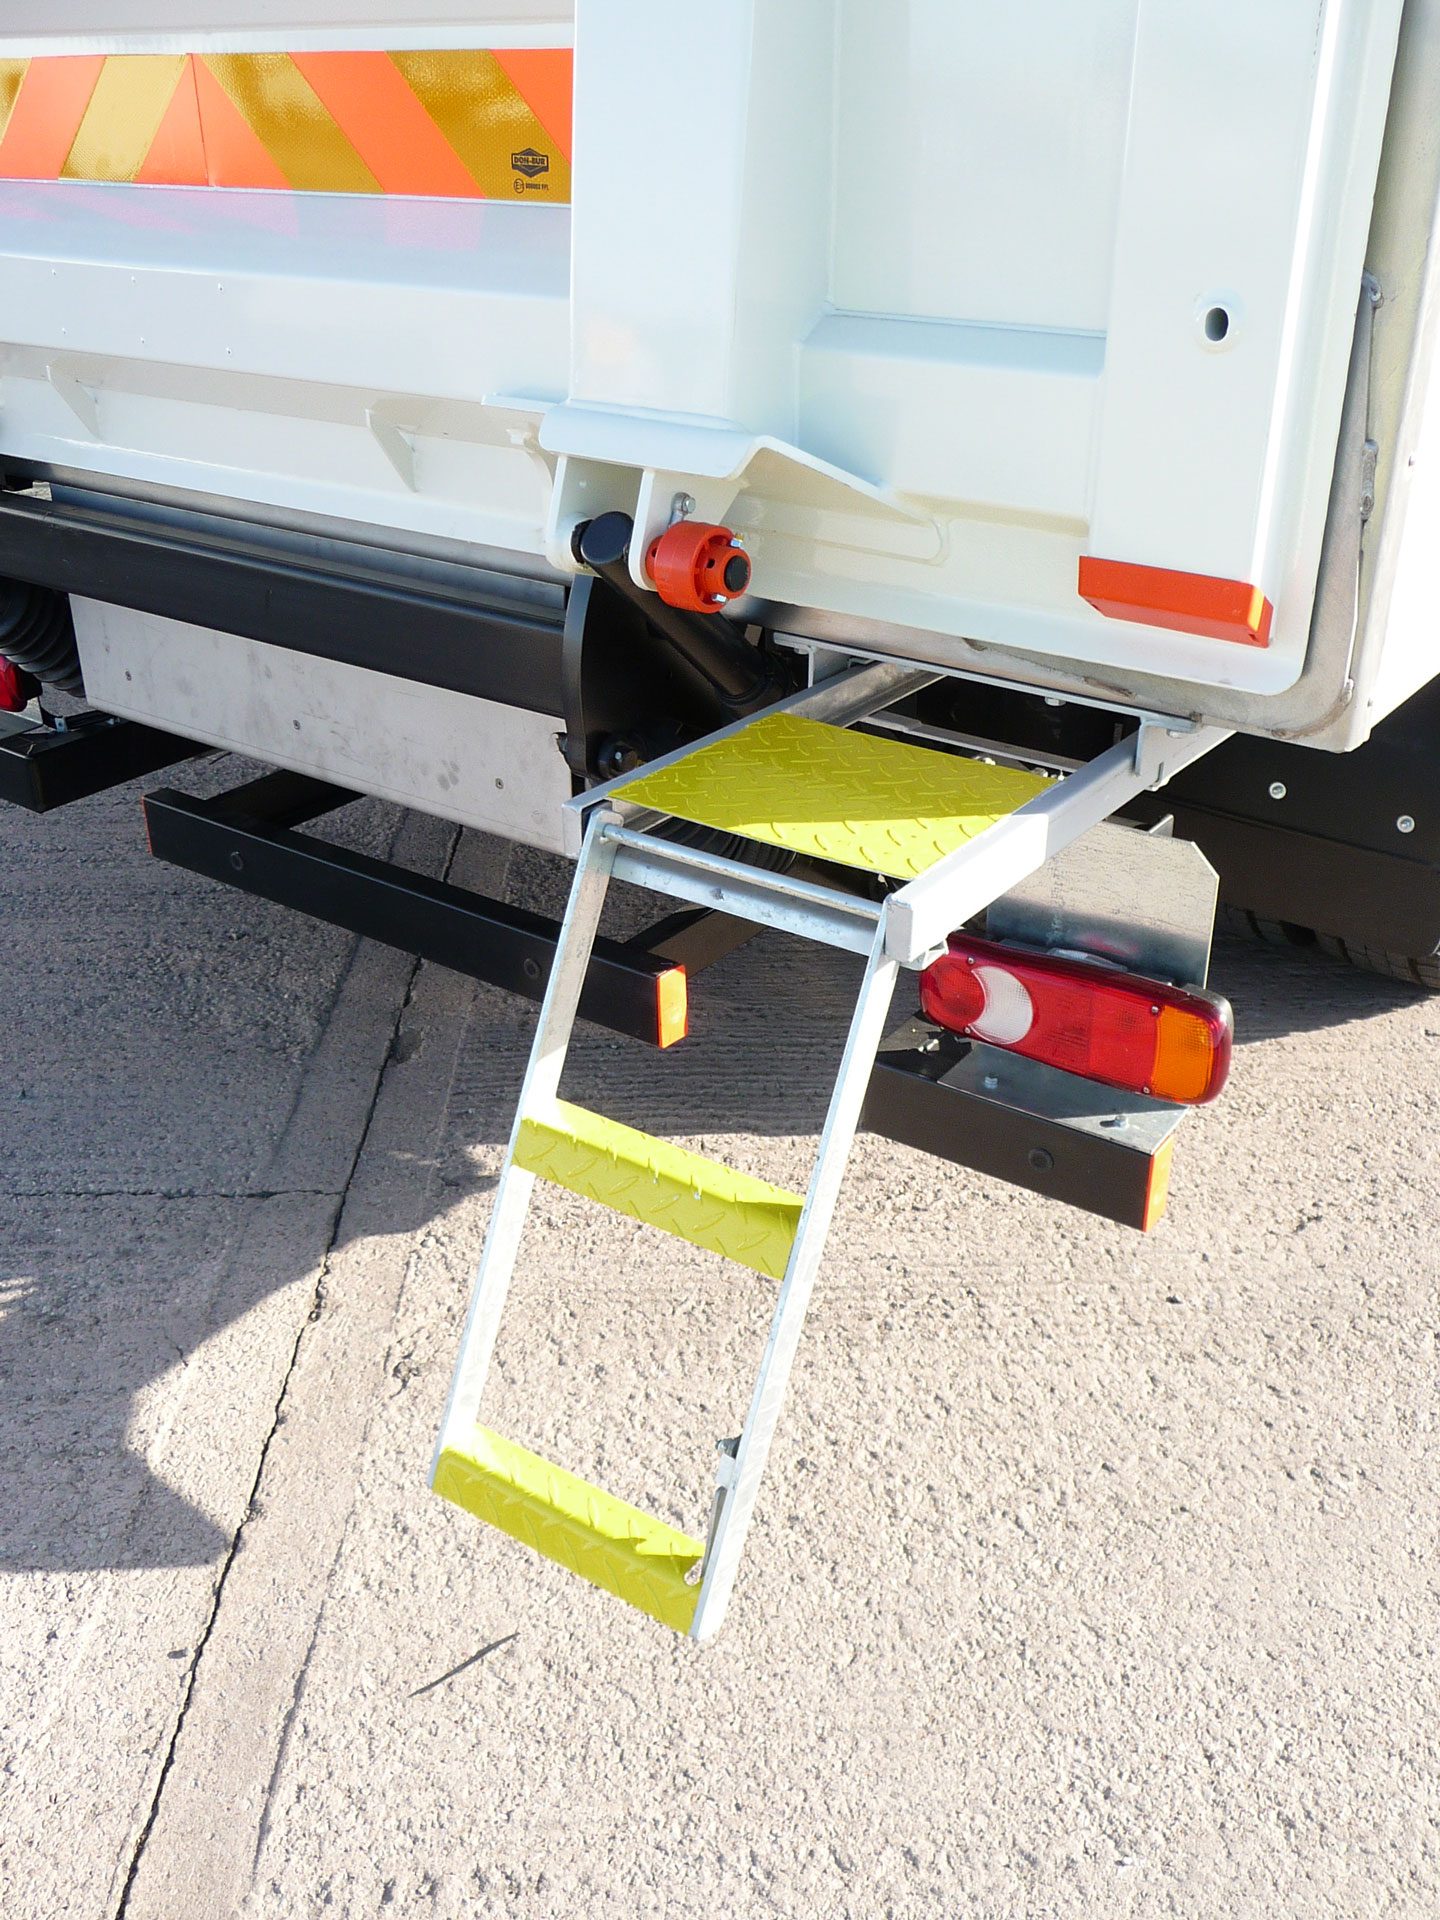 2 Rung Pull-Out Drop-Down Step With Platform